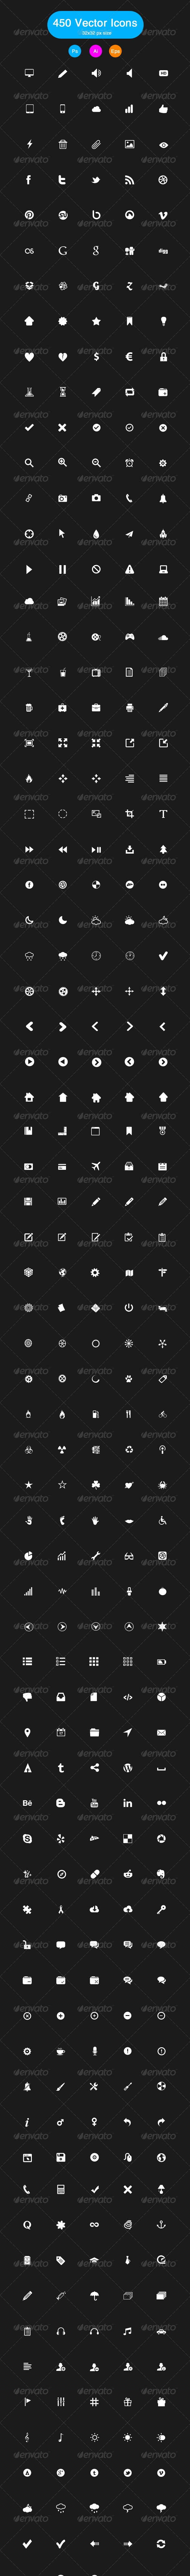 450 Black and White Vector Icons - Web Icons